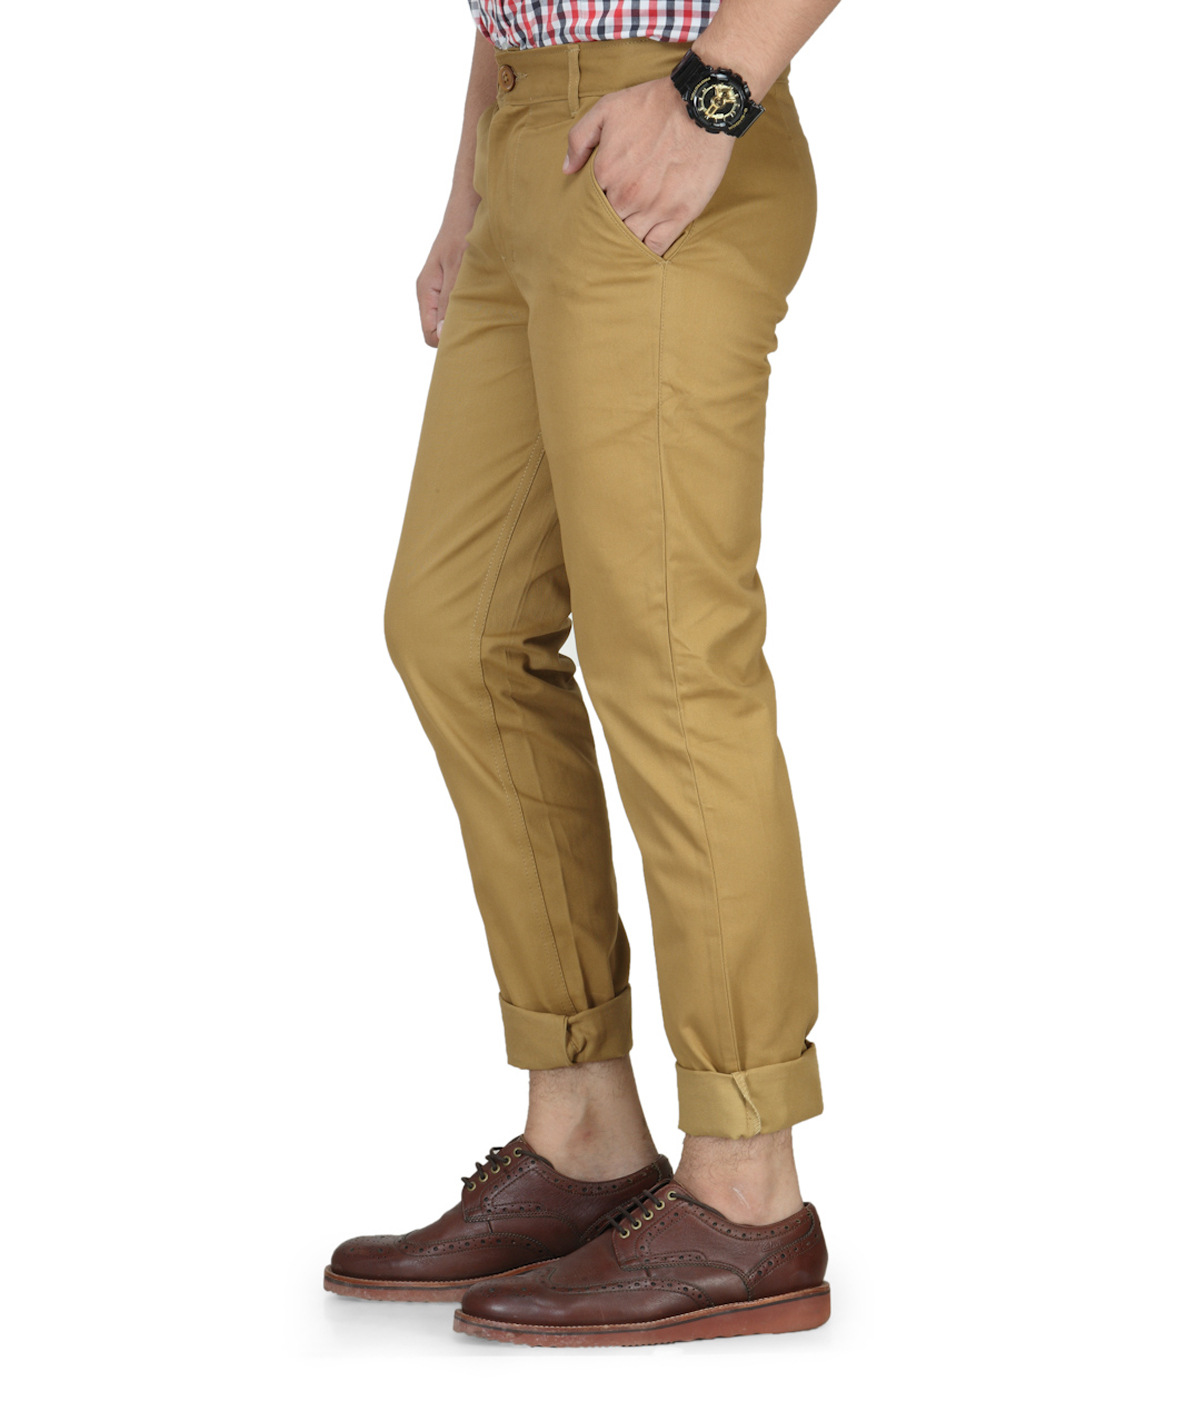 Haute couture beige chinos for Haute couture shopping